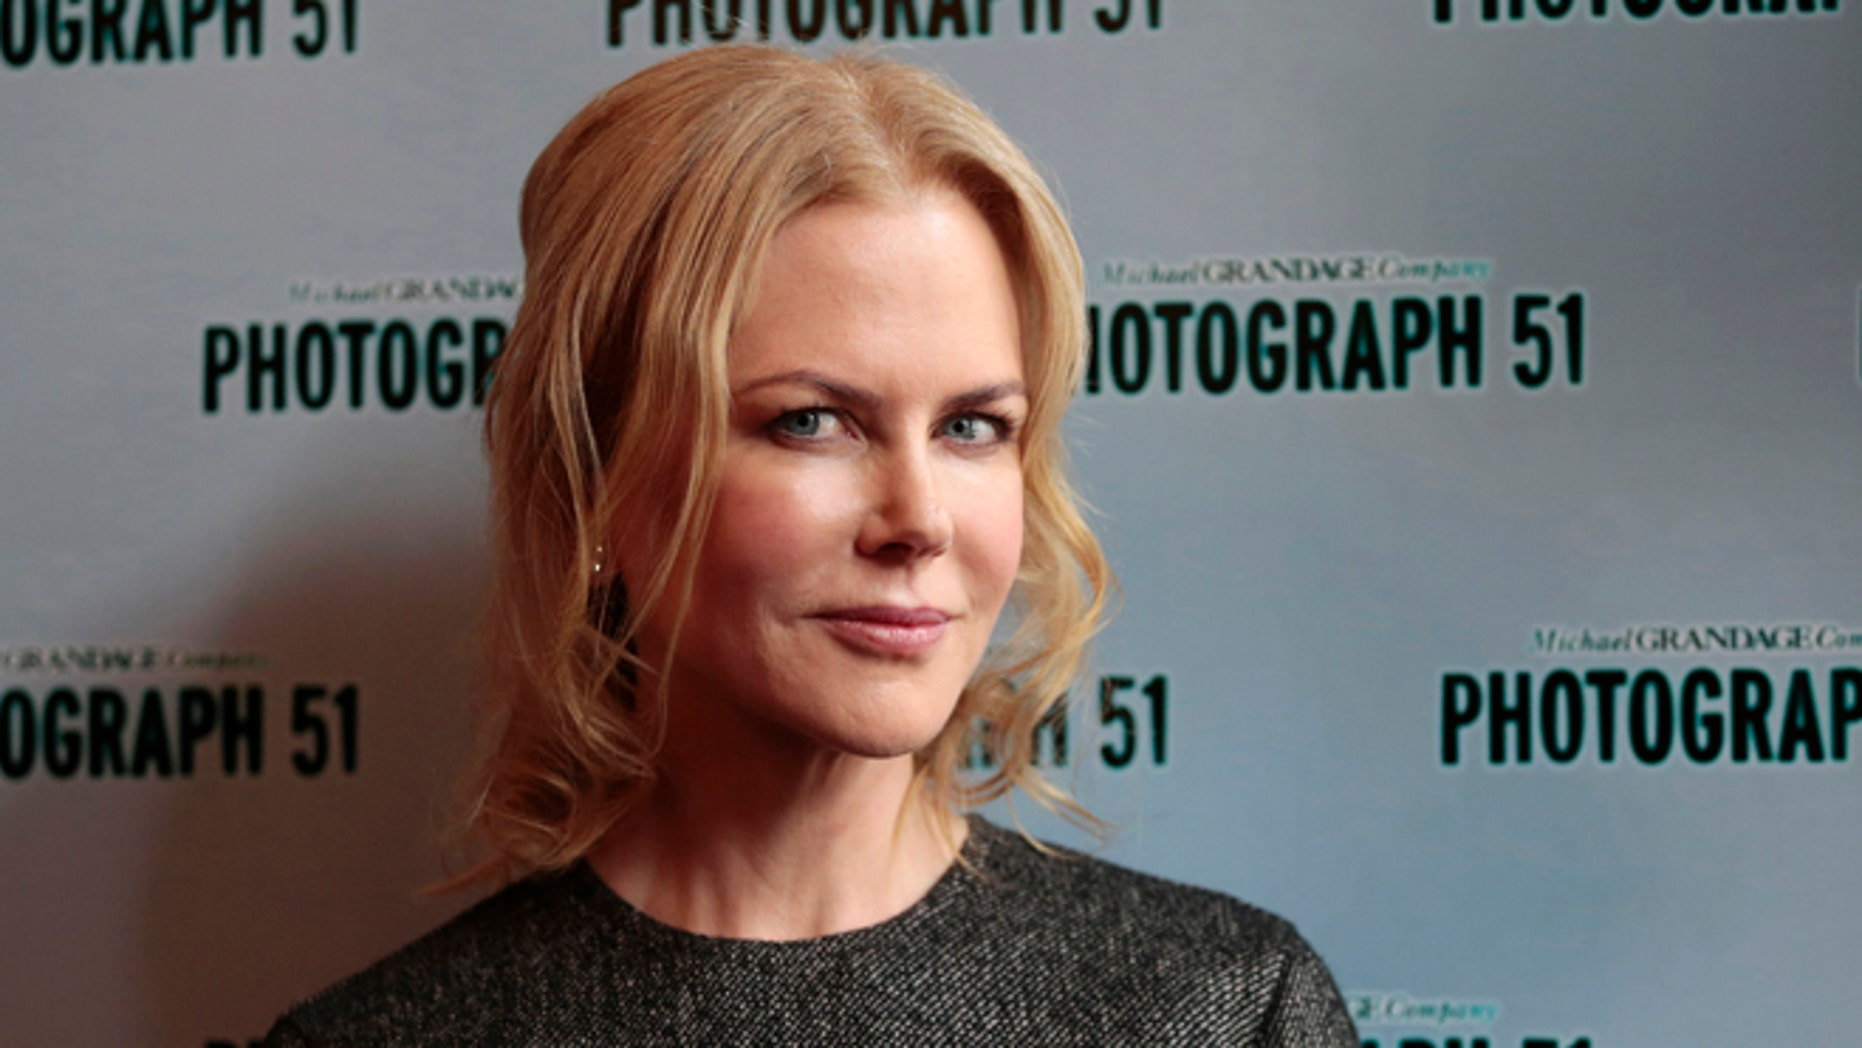 September 7, 2015. Nicole Kidman poses for a photograph at the Noel Coward Theatre in London, Britain.